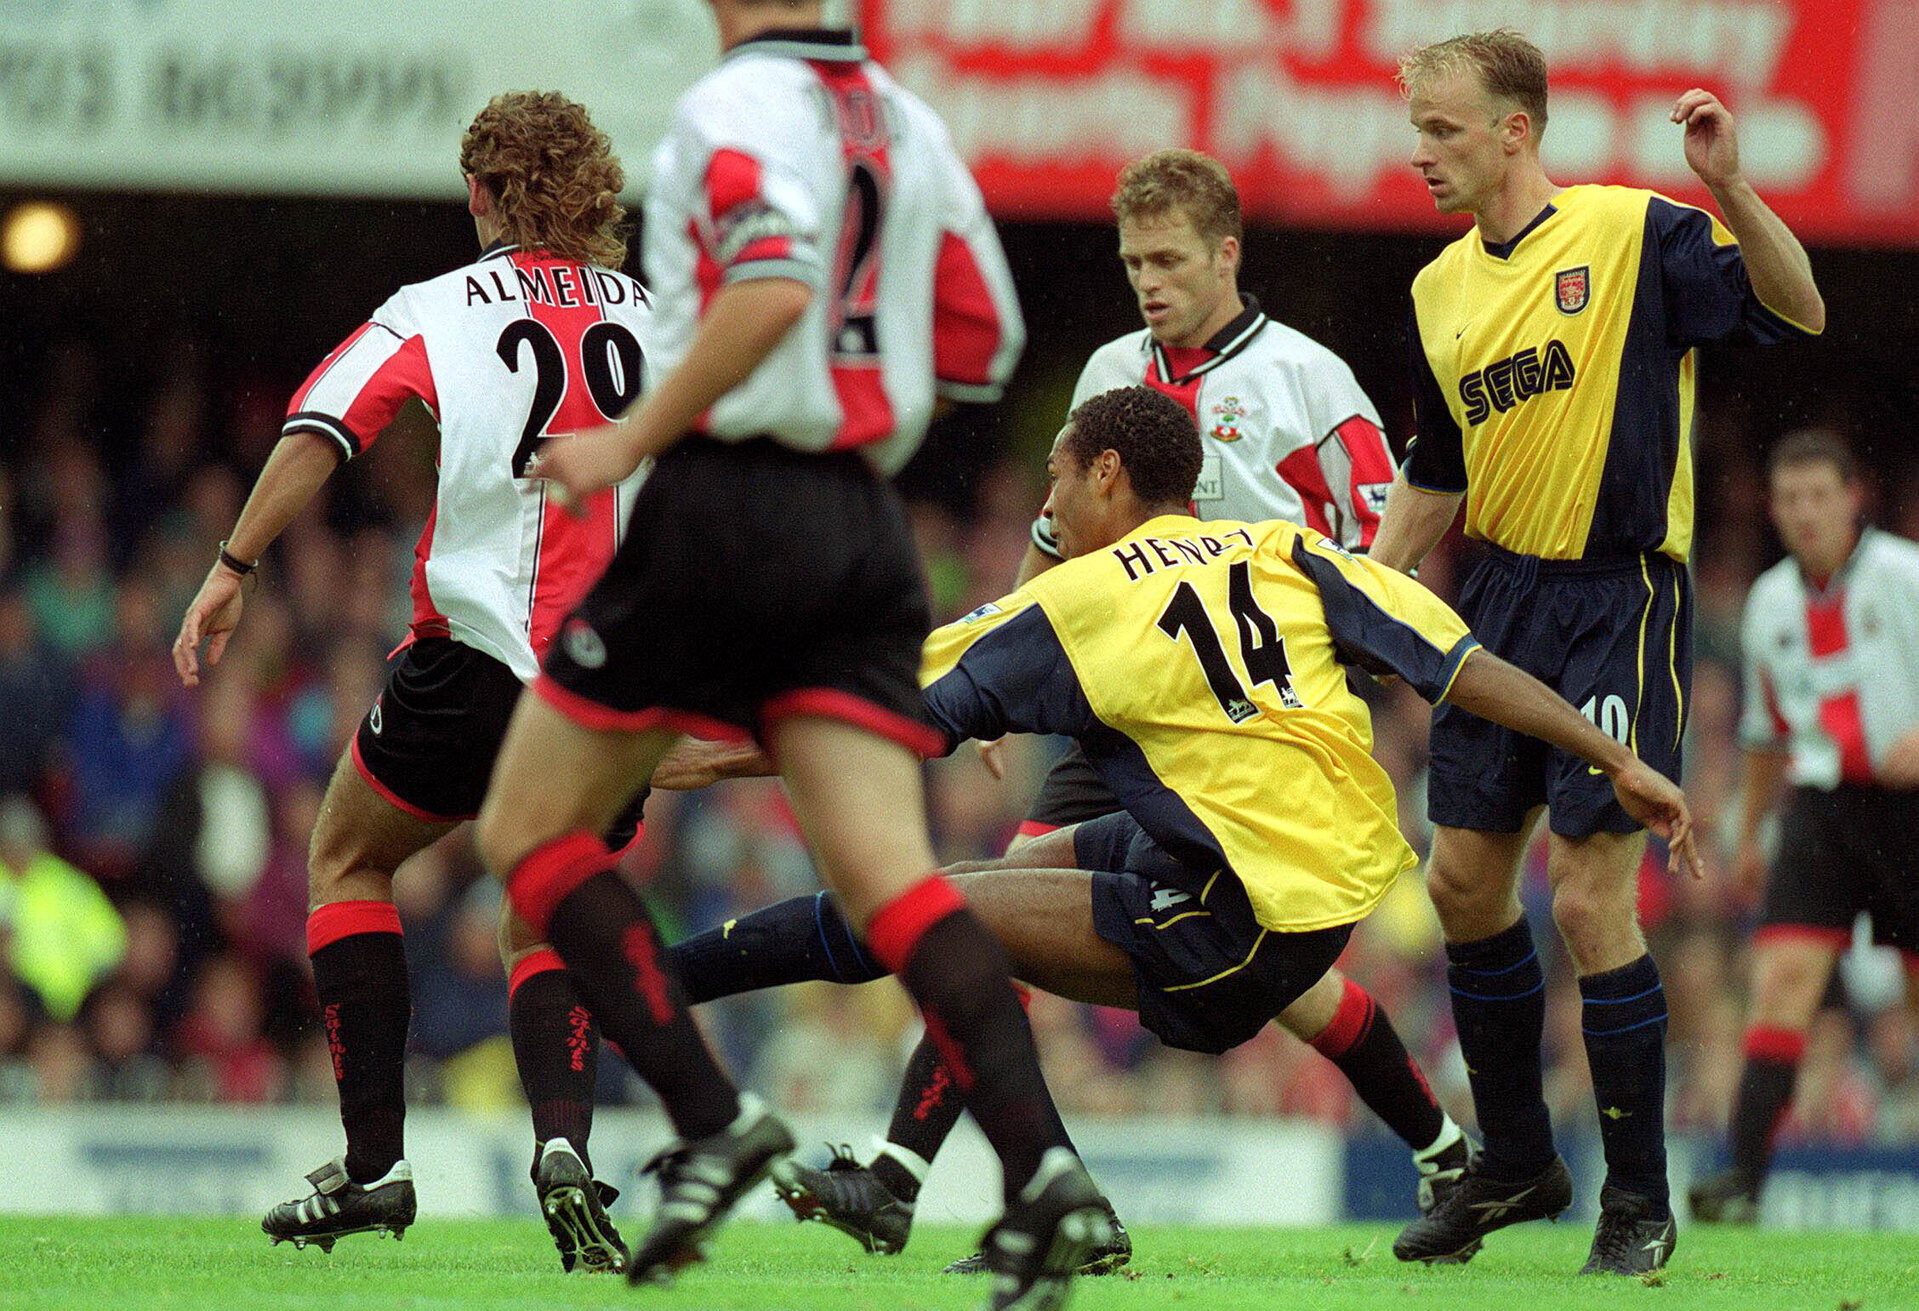 Football - Southampton v Arsenal - F.A. Premier League - 18/9/99  Mandatory Credit : Action Images / Darren Walsh  Arsenal's Thierry Henry scores his first goal for Arsenal and the winner in todays match against Southampton